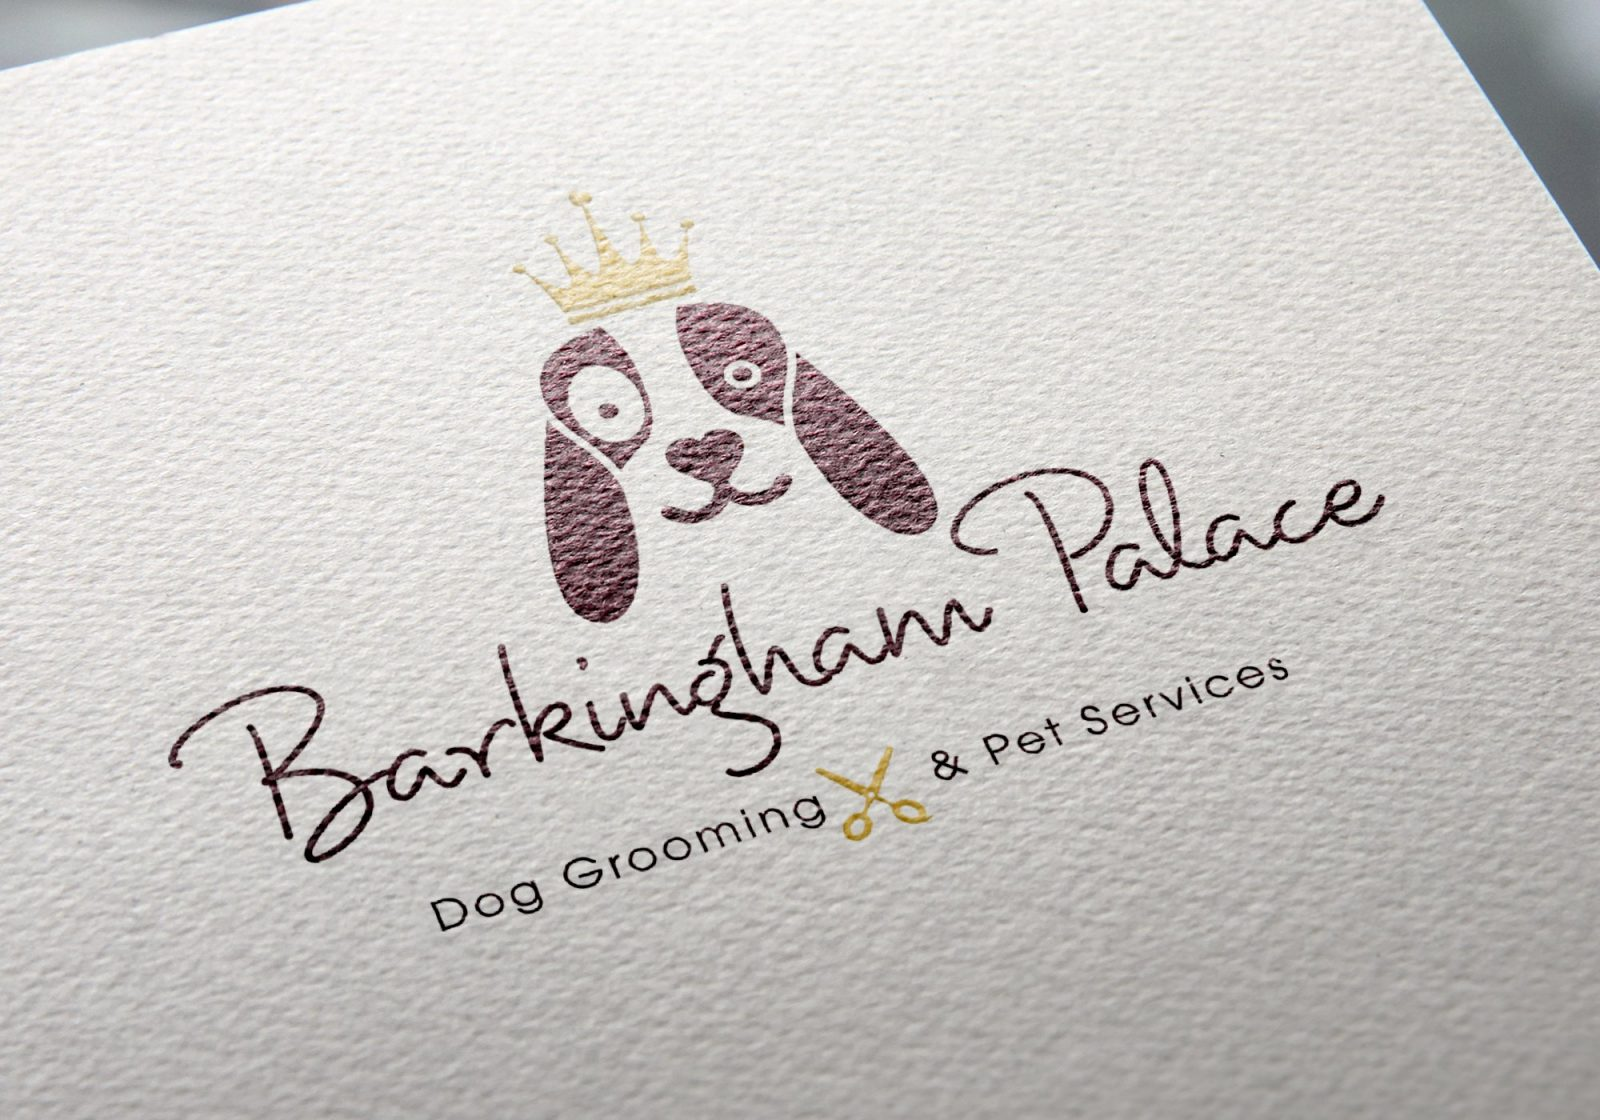 Close up of a Logo on letterhead paper for Barkingham Palace dog grooming services